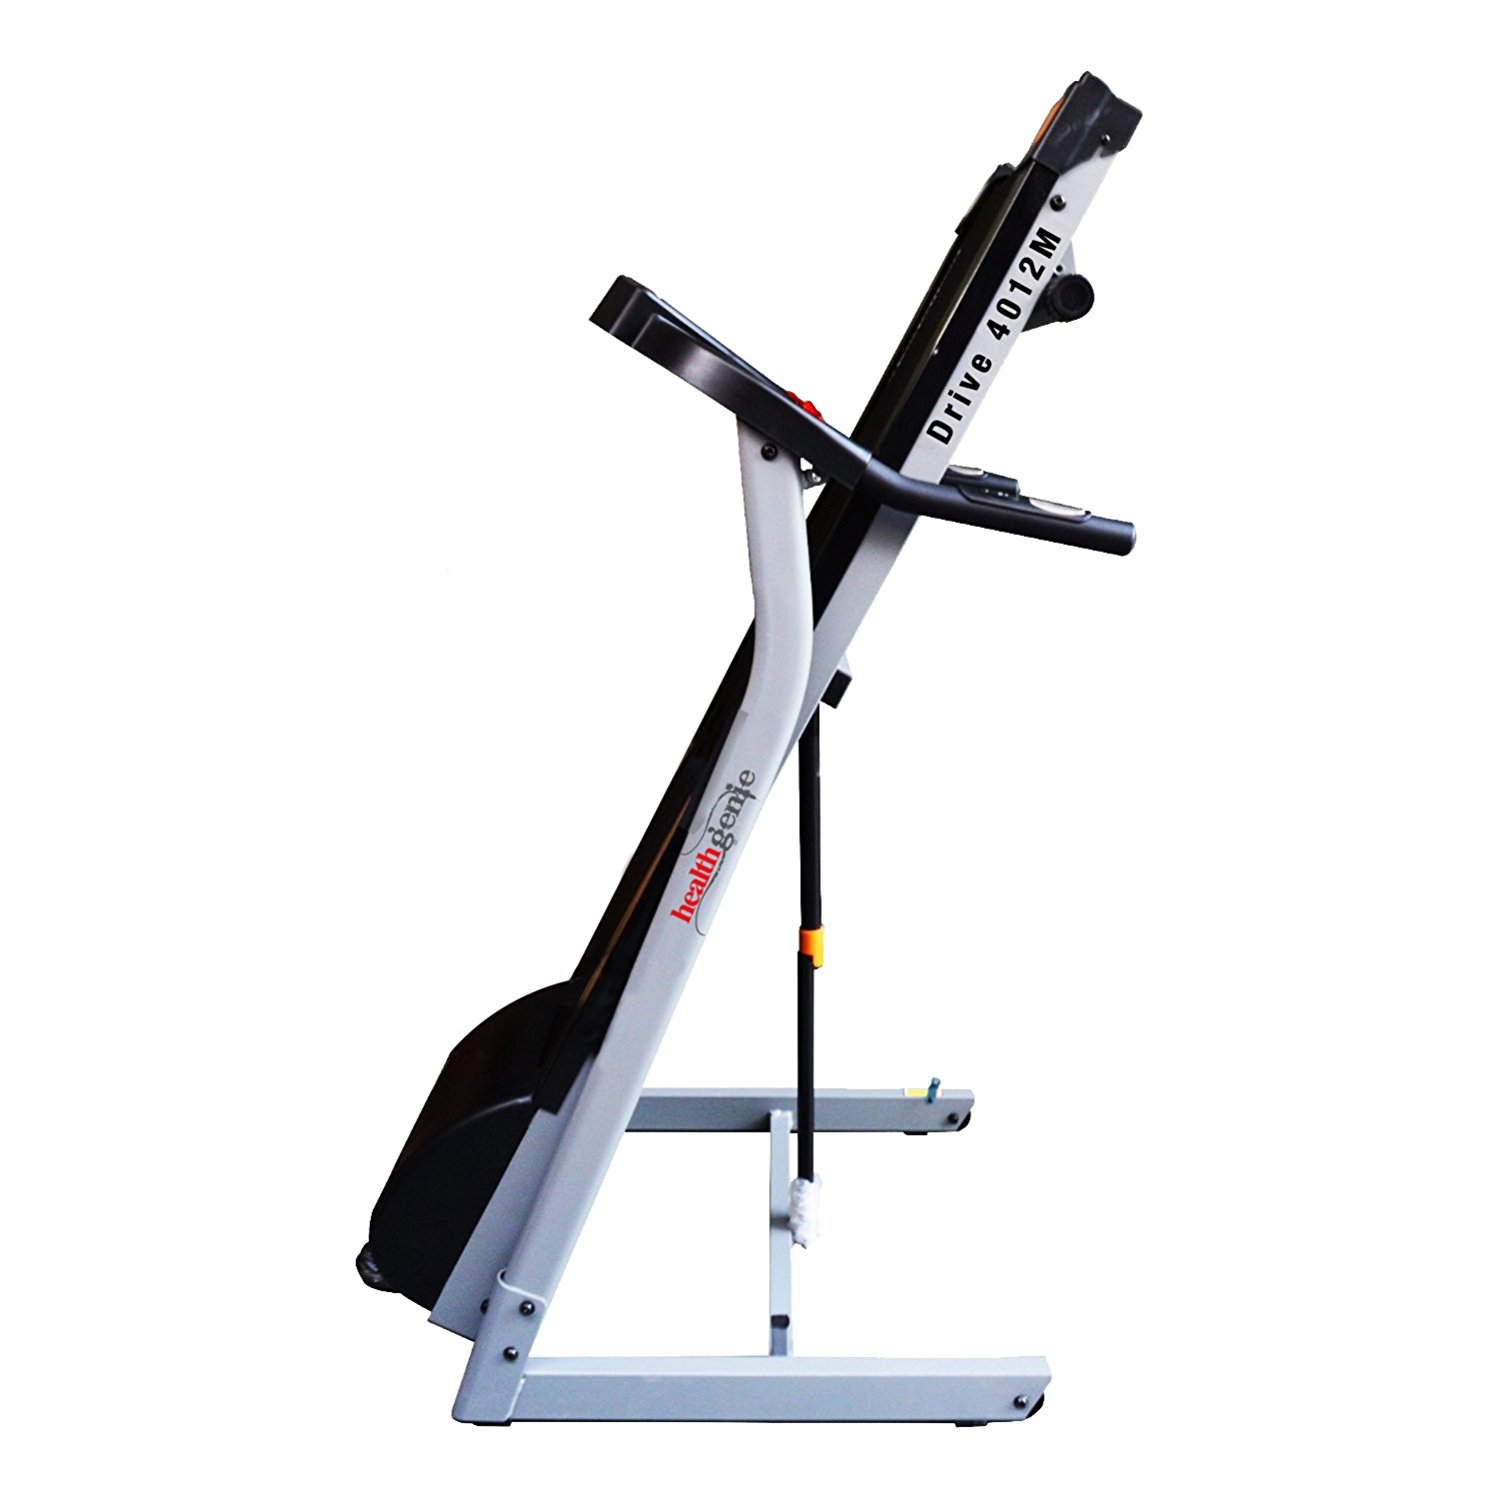 The Comprehensive 2019 Treadmill Buying Guide From The ...